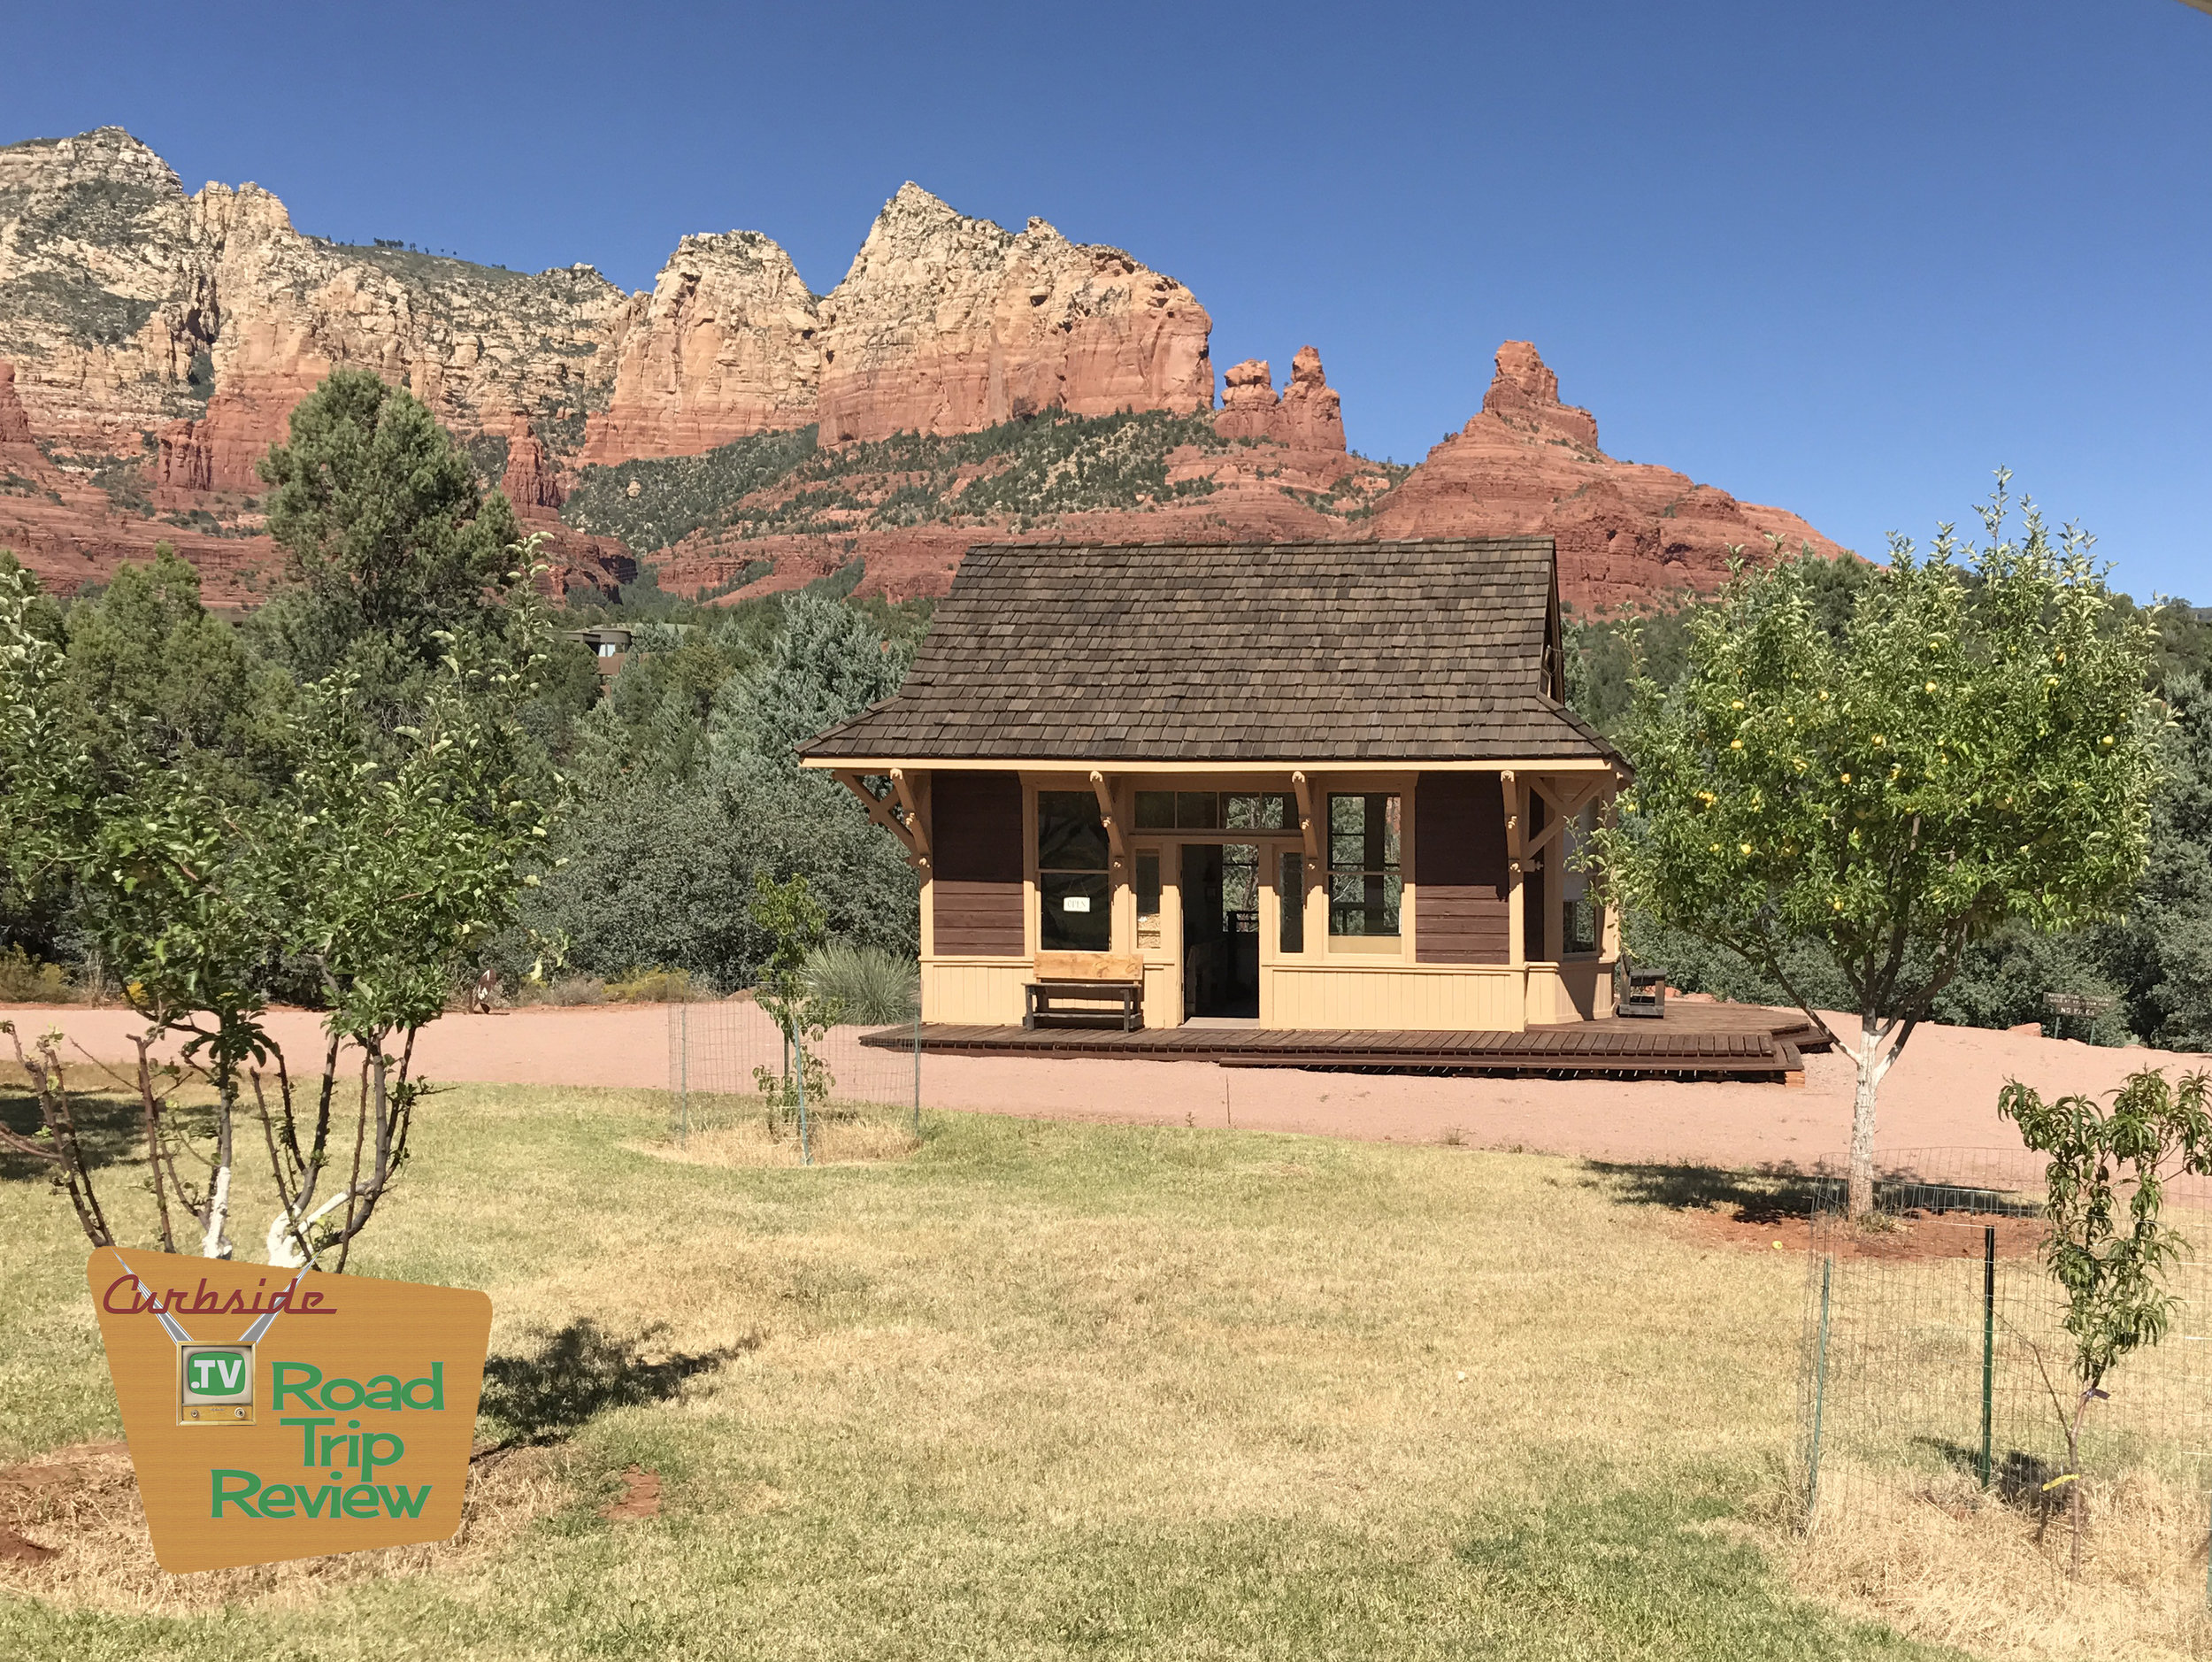 The first telegraph office in Sedona, Arizona set against the beautiful backdrop of the red rock formations that surround the town.